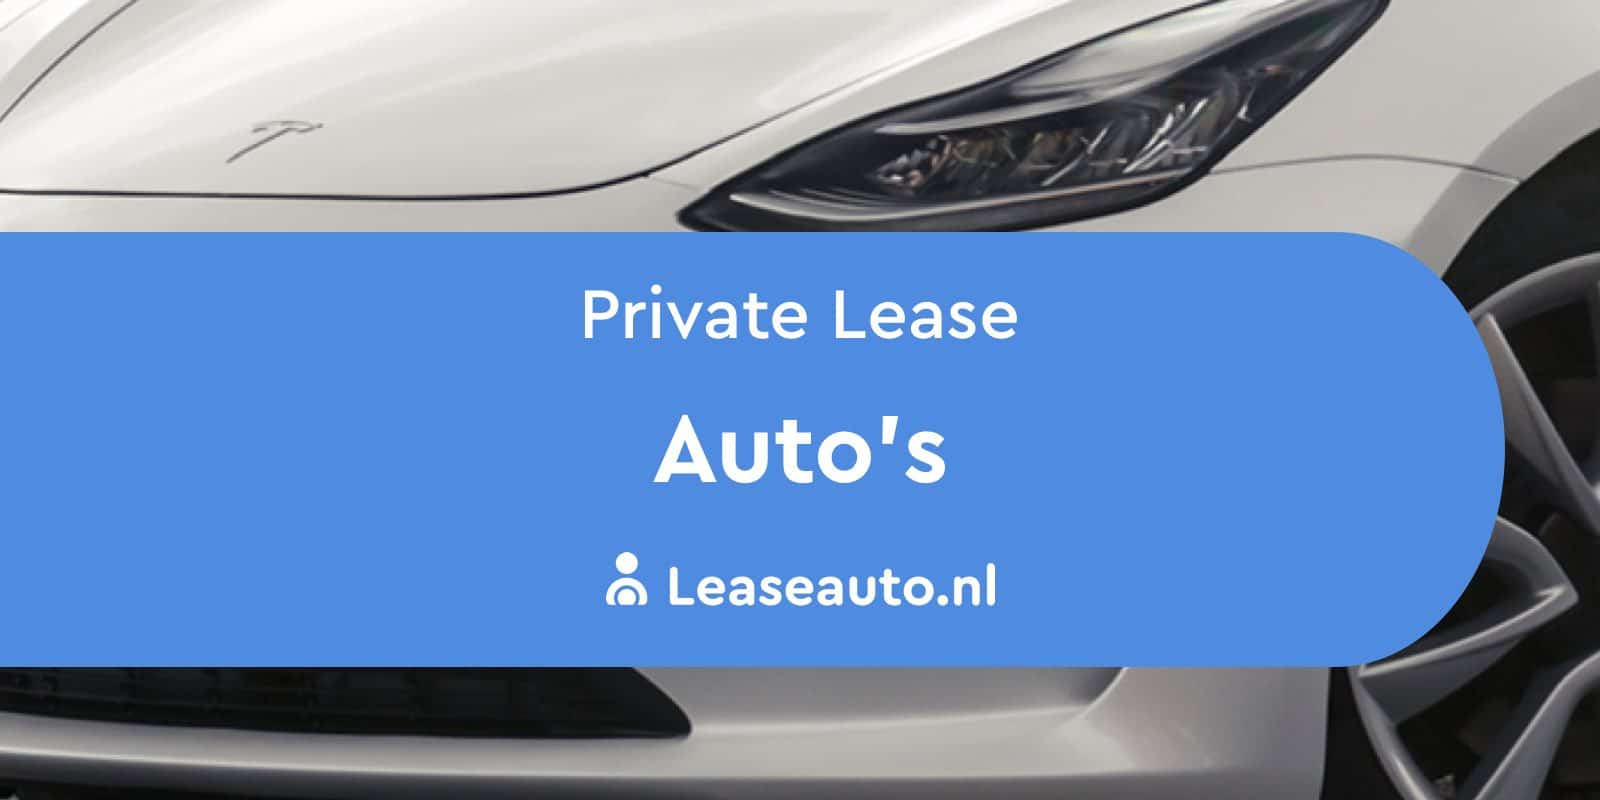 Private Lease Auto